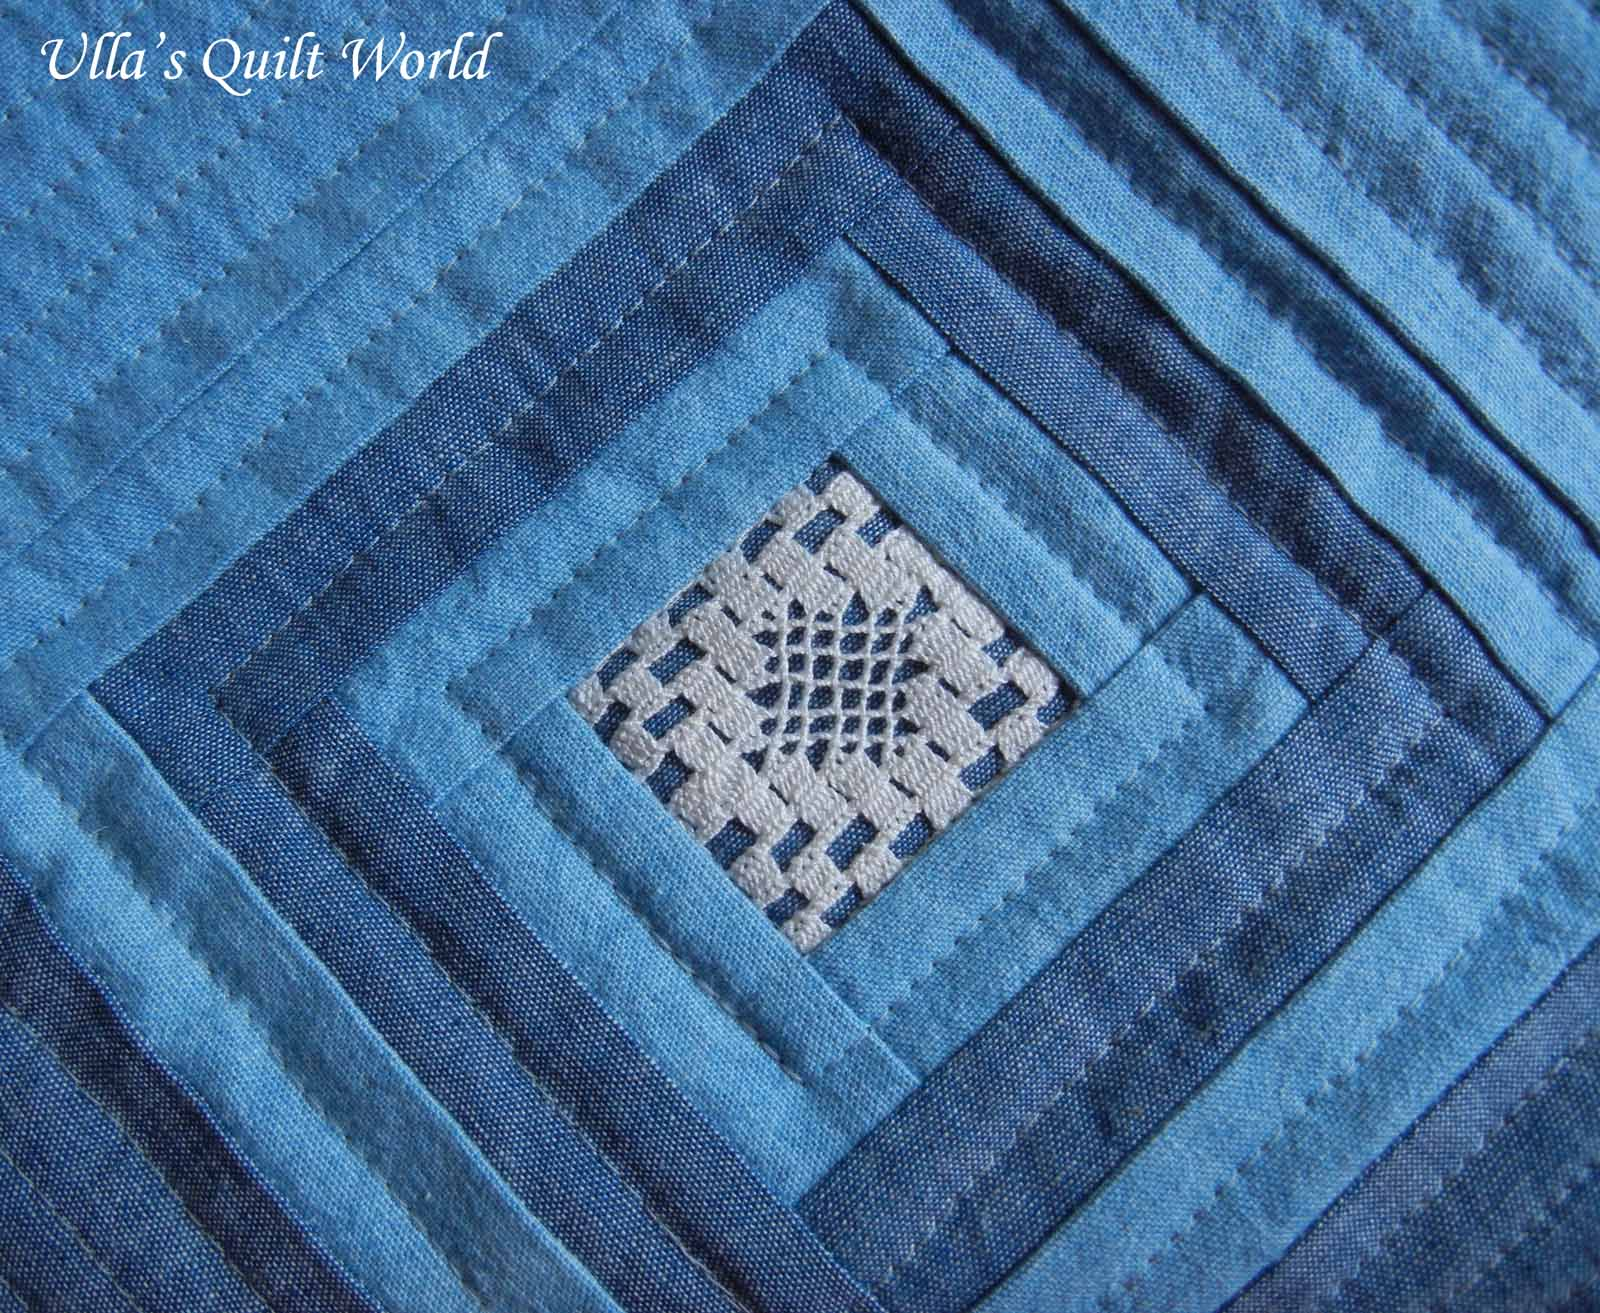 Quilting blogs what are quilters blogging about today for Window quilt